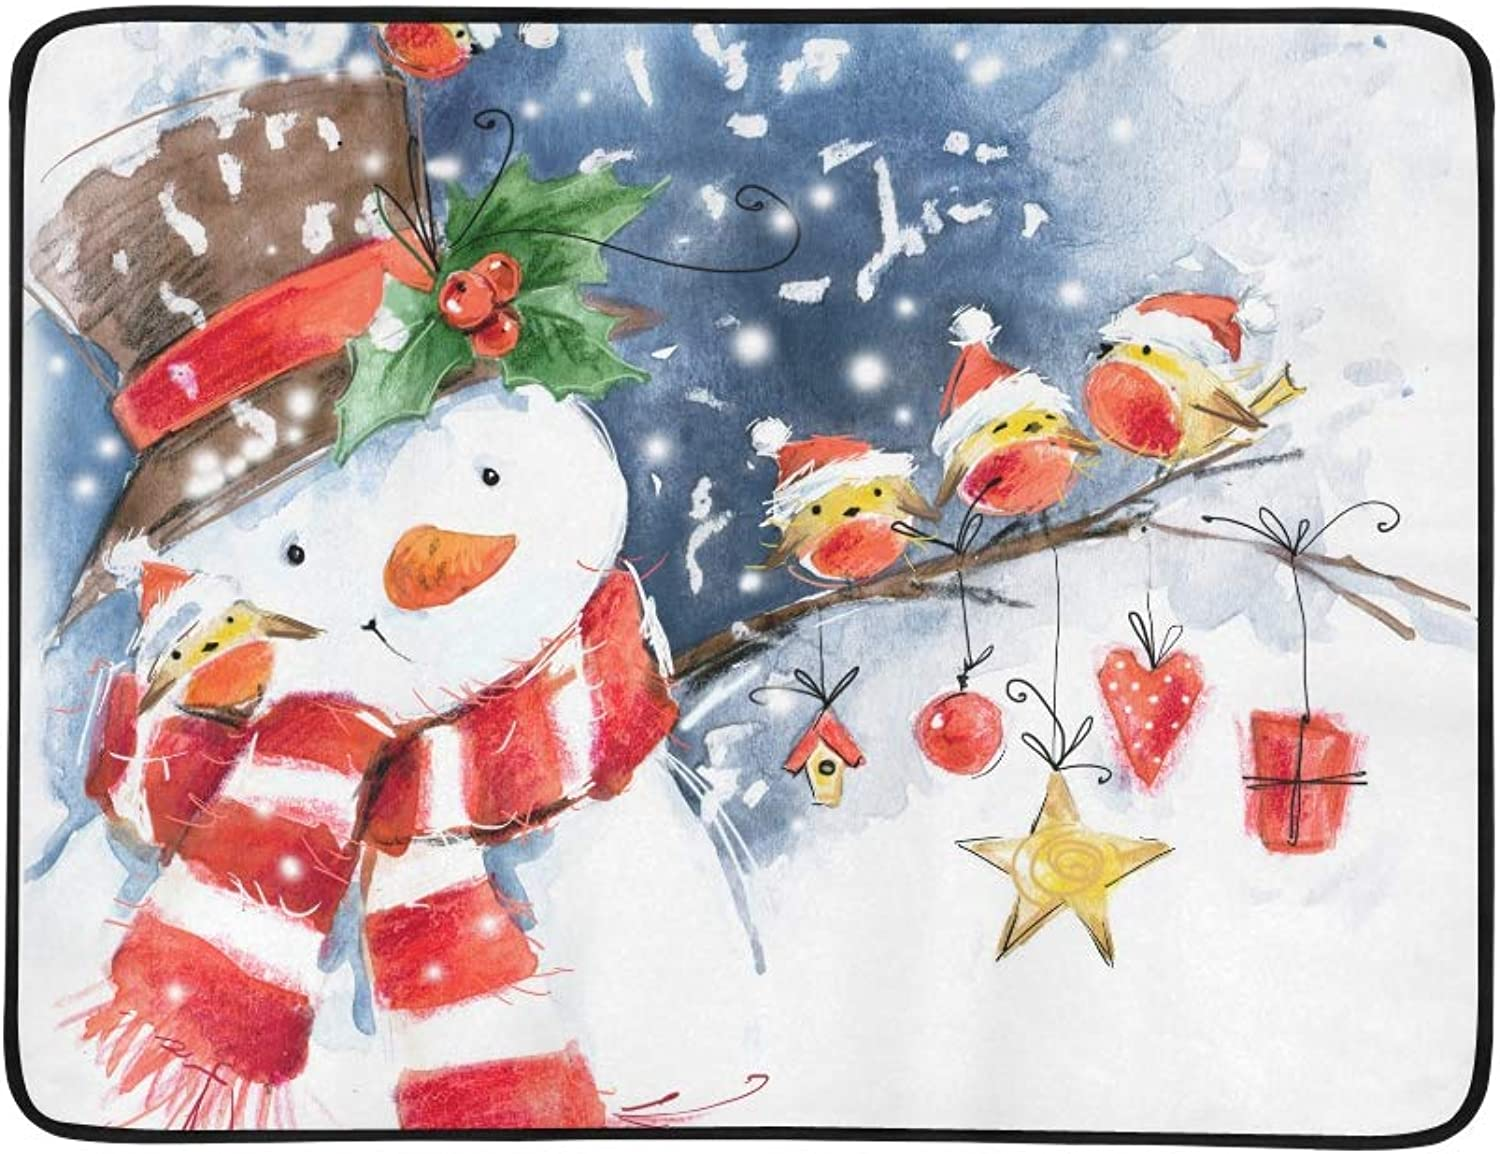 Watercolor Snowman Cute Bird Snow Snowflake Pattern Portable and Foldable Blanket Mat 60x78 Inch Handy Mat for Camping Picnic Beach Indoor Outdoor Travel